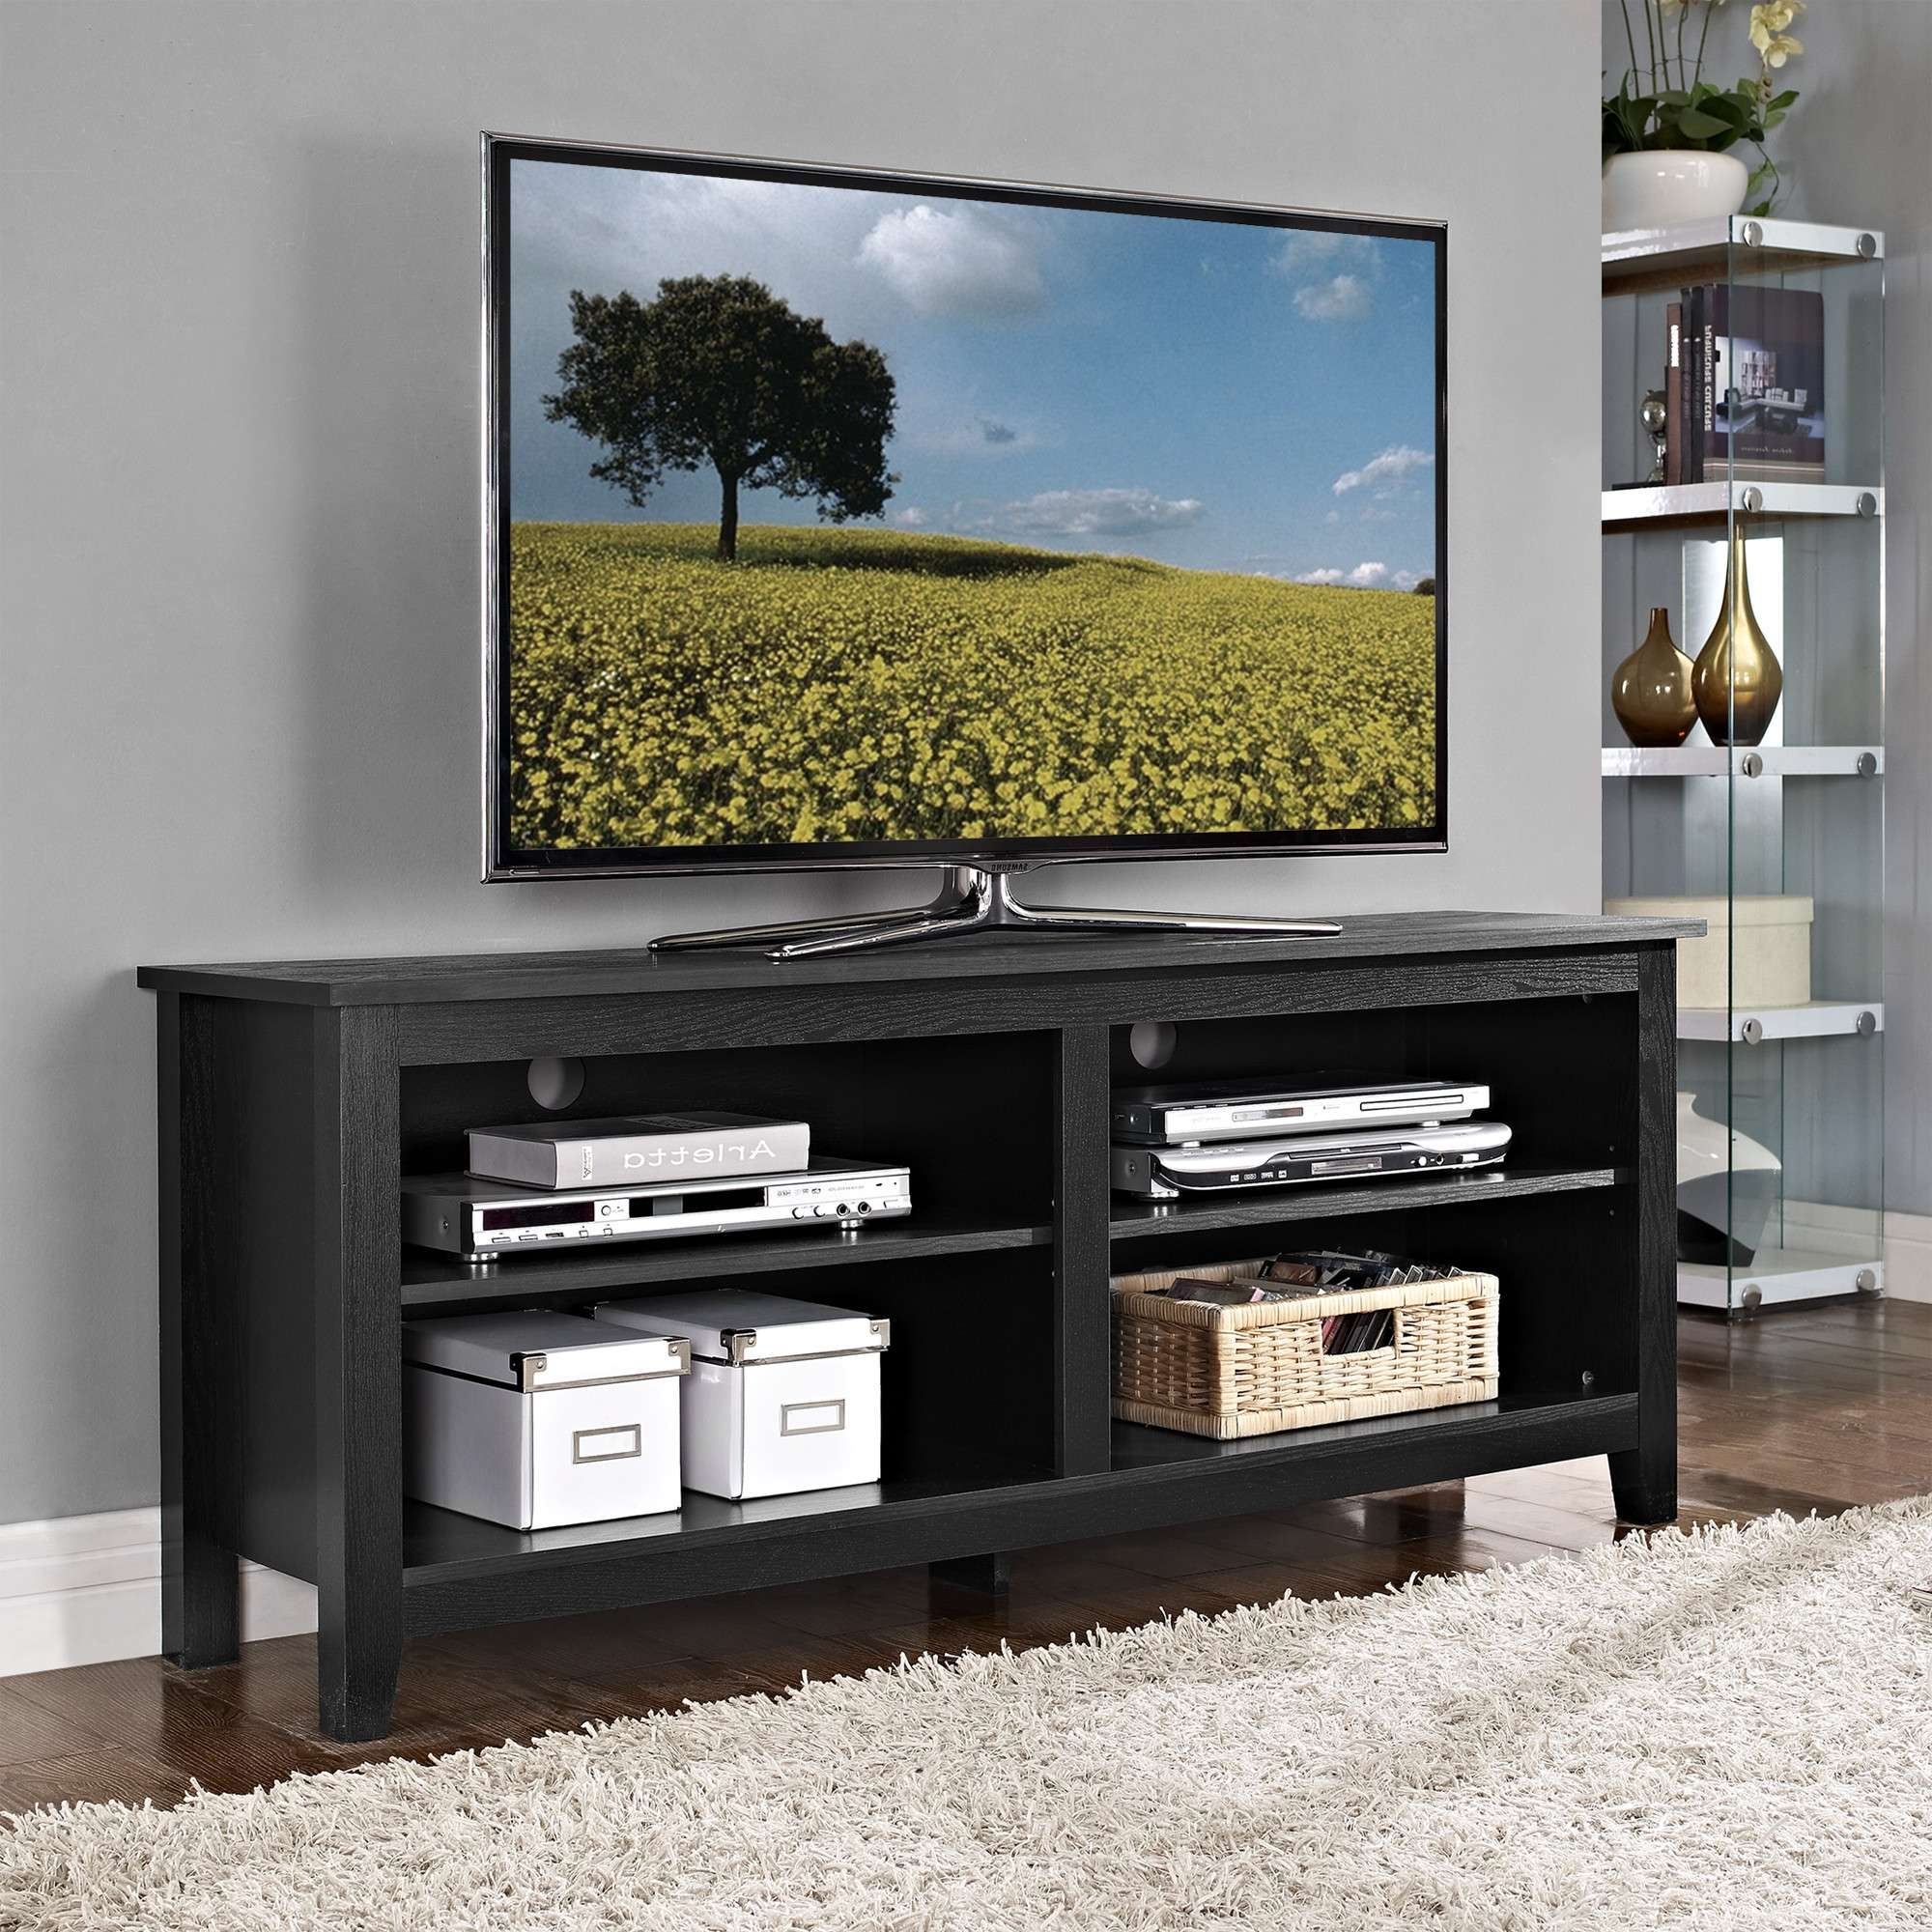 Tv Stand For 43 Inch Tv For Tv Stands For 43 Inch Tv (View 8 of 15)